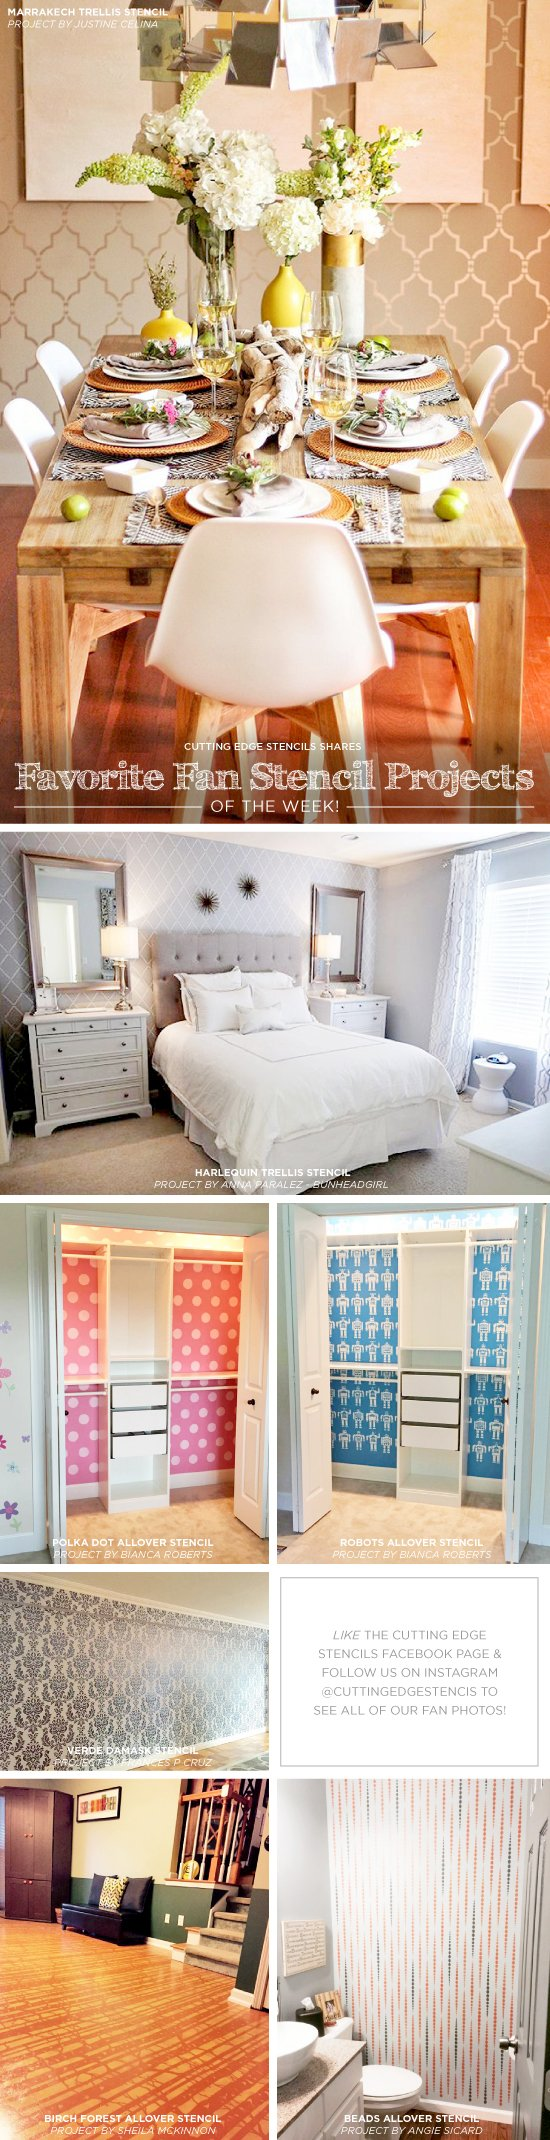 Cutting Edge Stencils shares DIY stenciled room ideas and accent wall projects. http://www.cuttingedgestencils.com/wall-stencils-stencil-designs.html